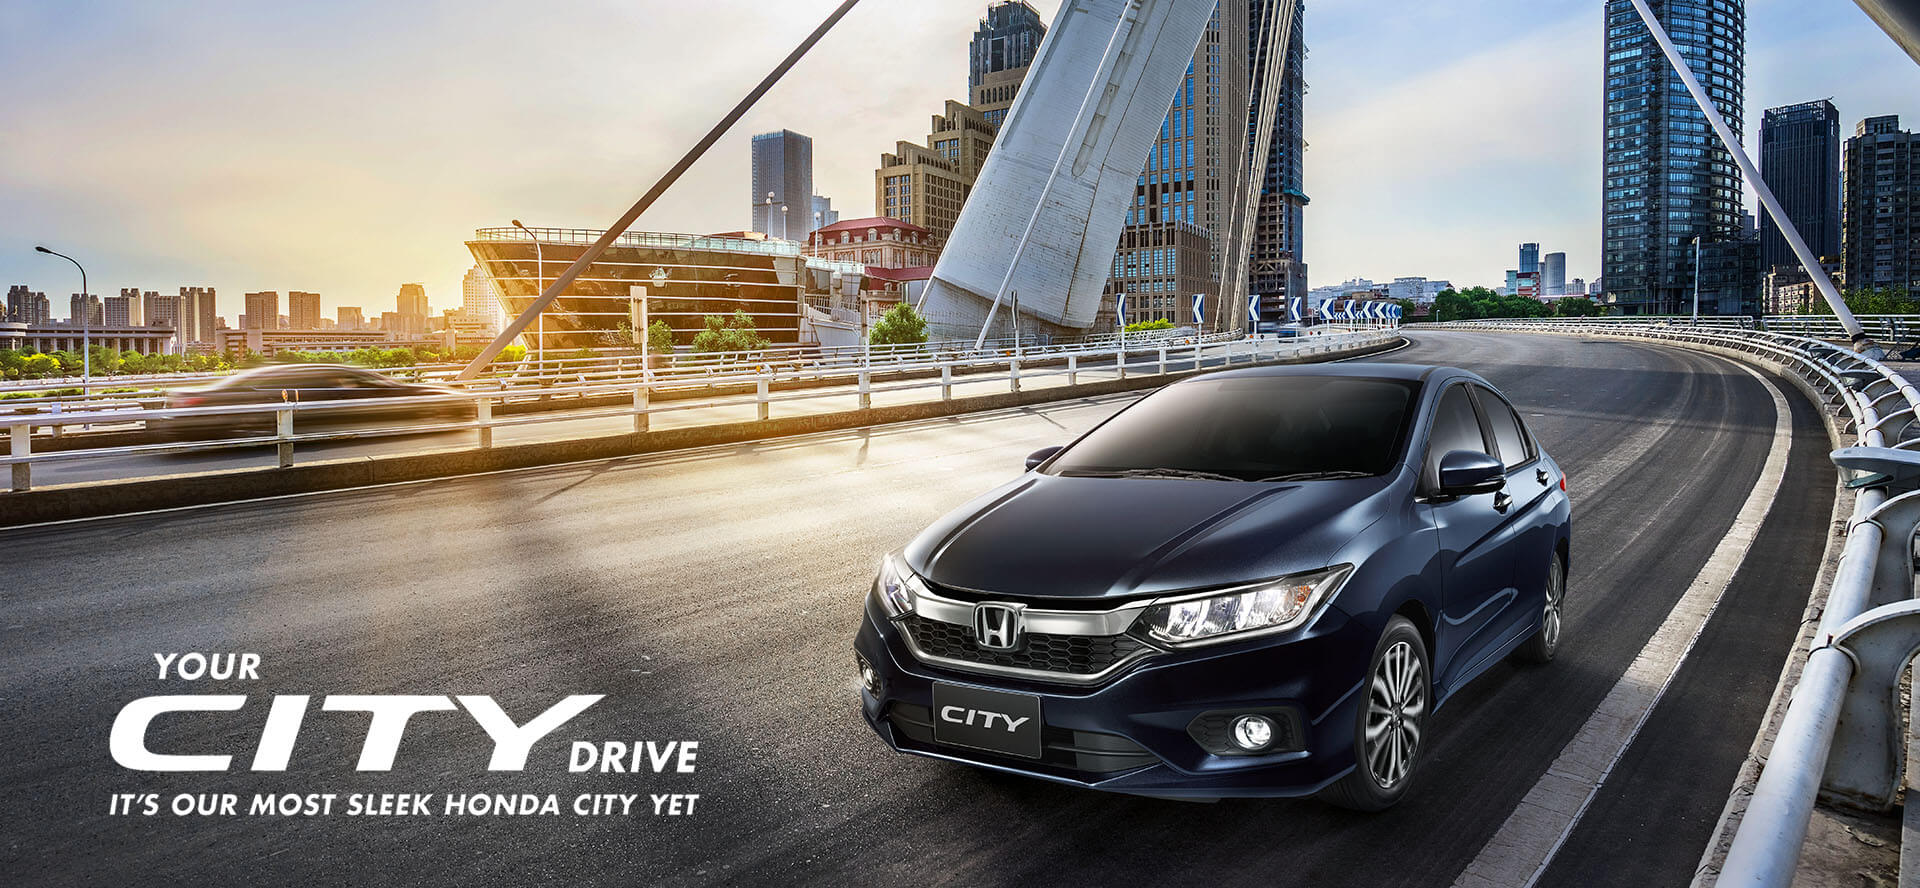 The All New Honda City - Your City Drive